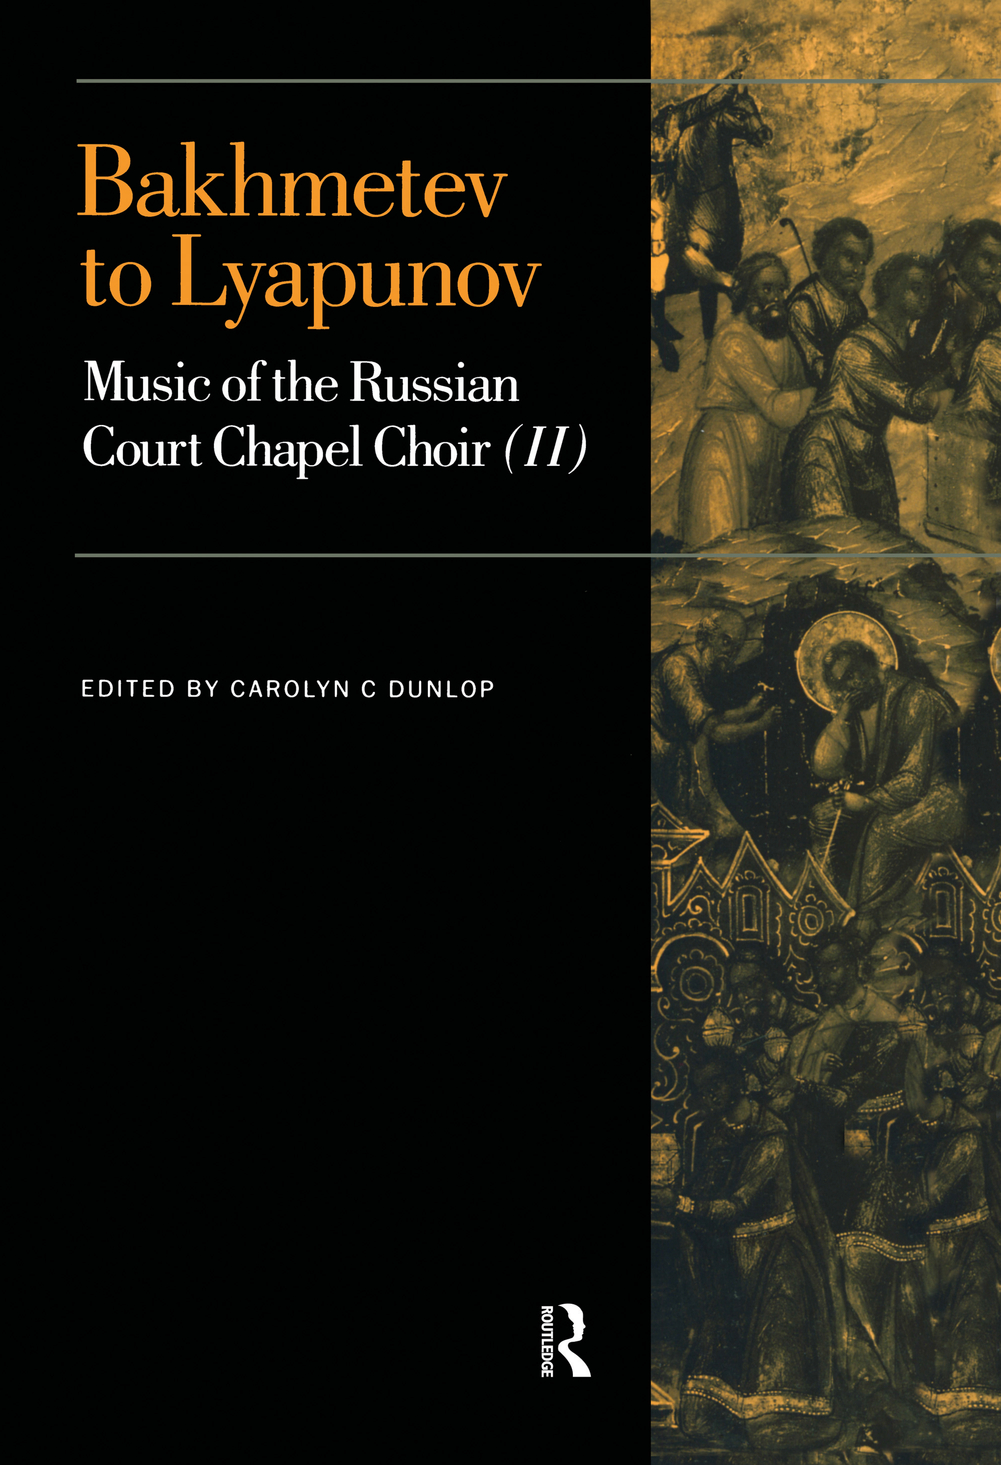 Bakhmetev to Lyapunov Music of the Russian Court Chapel Choir II